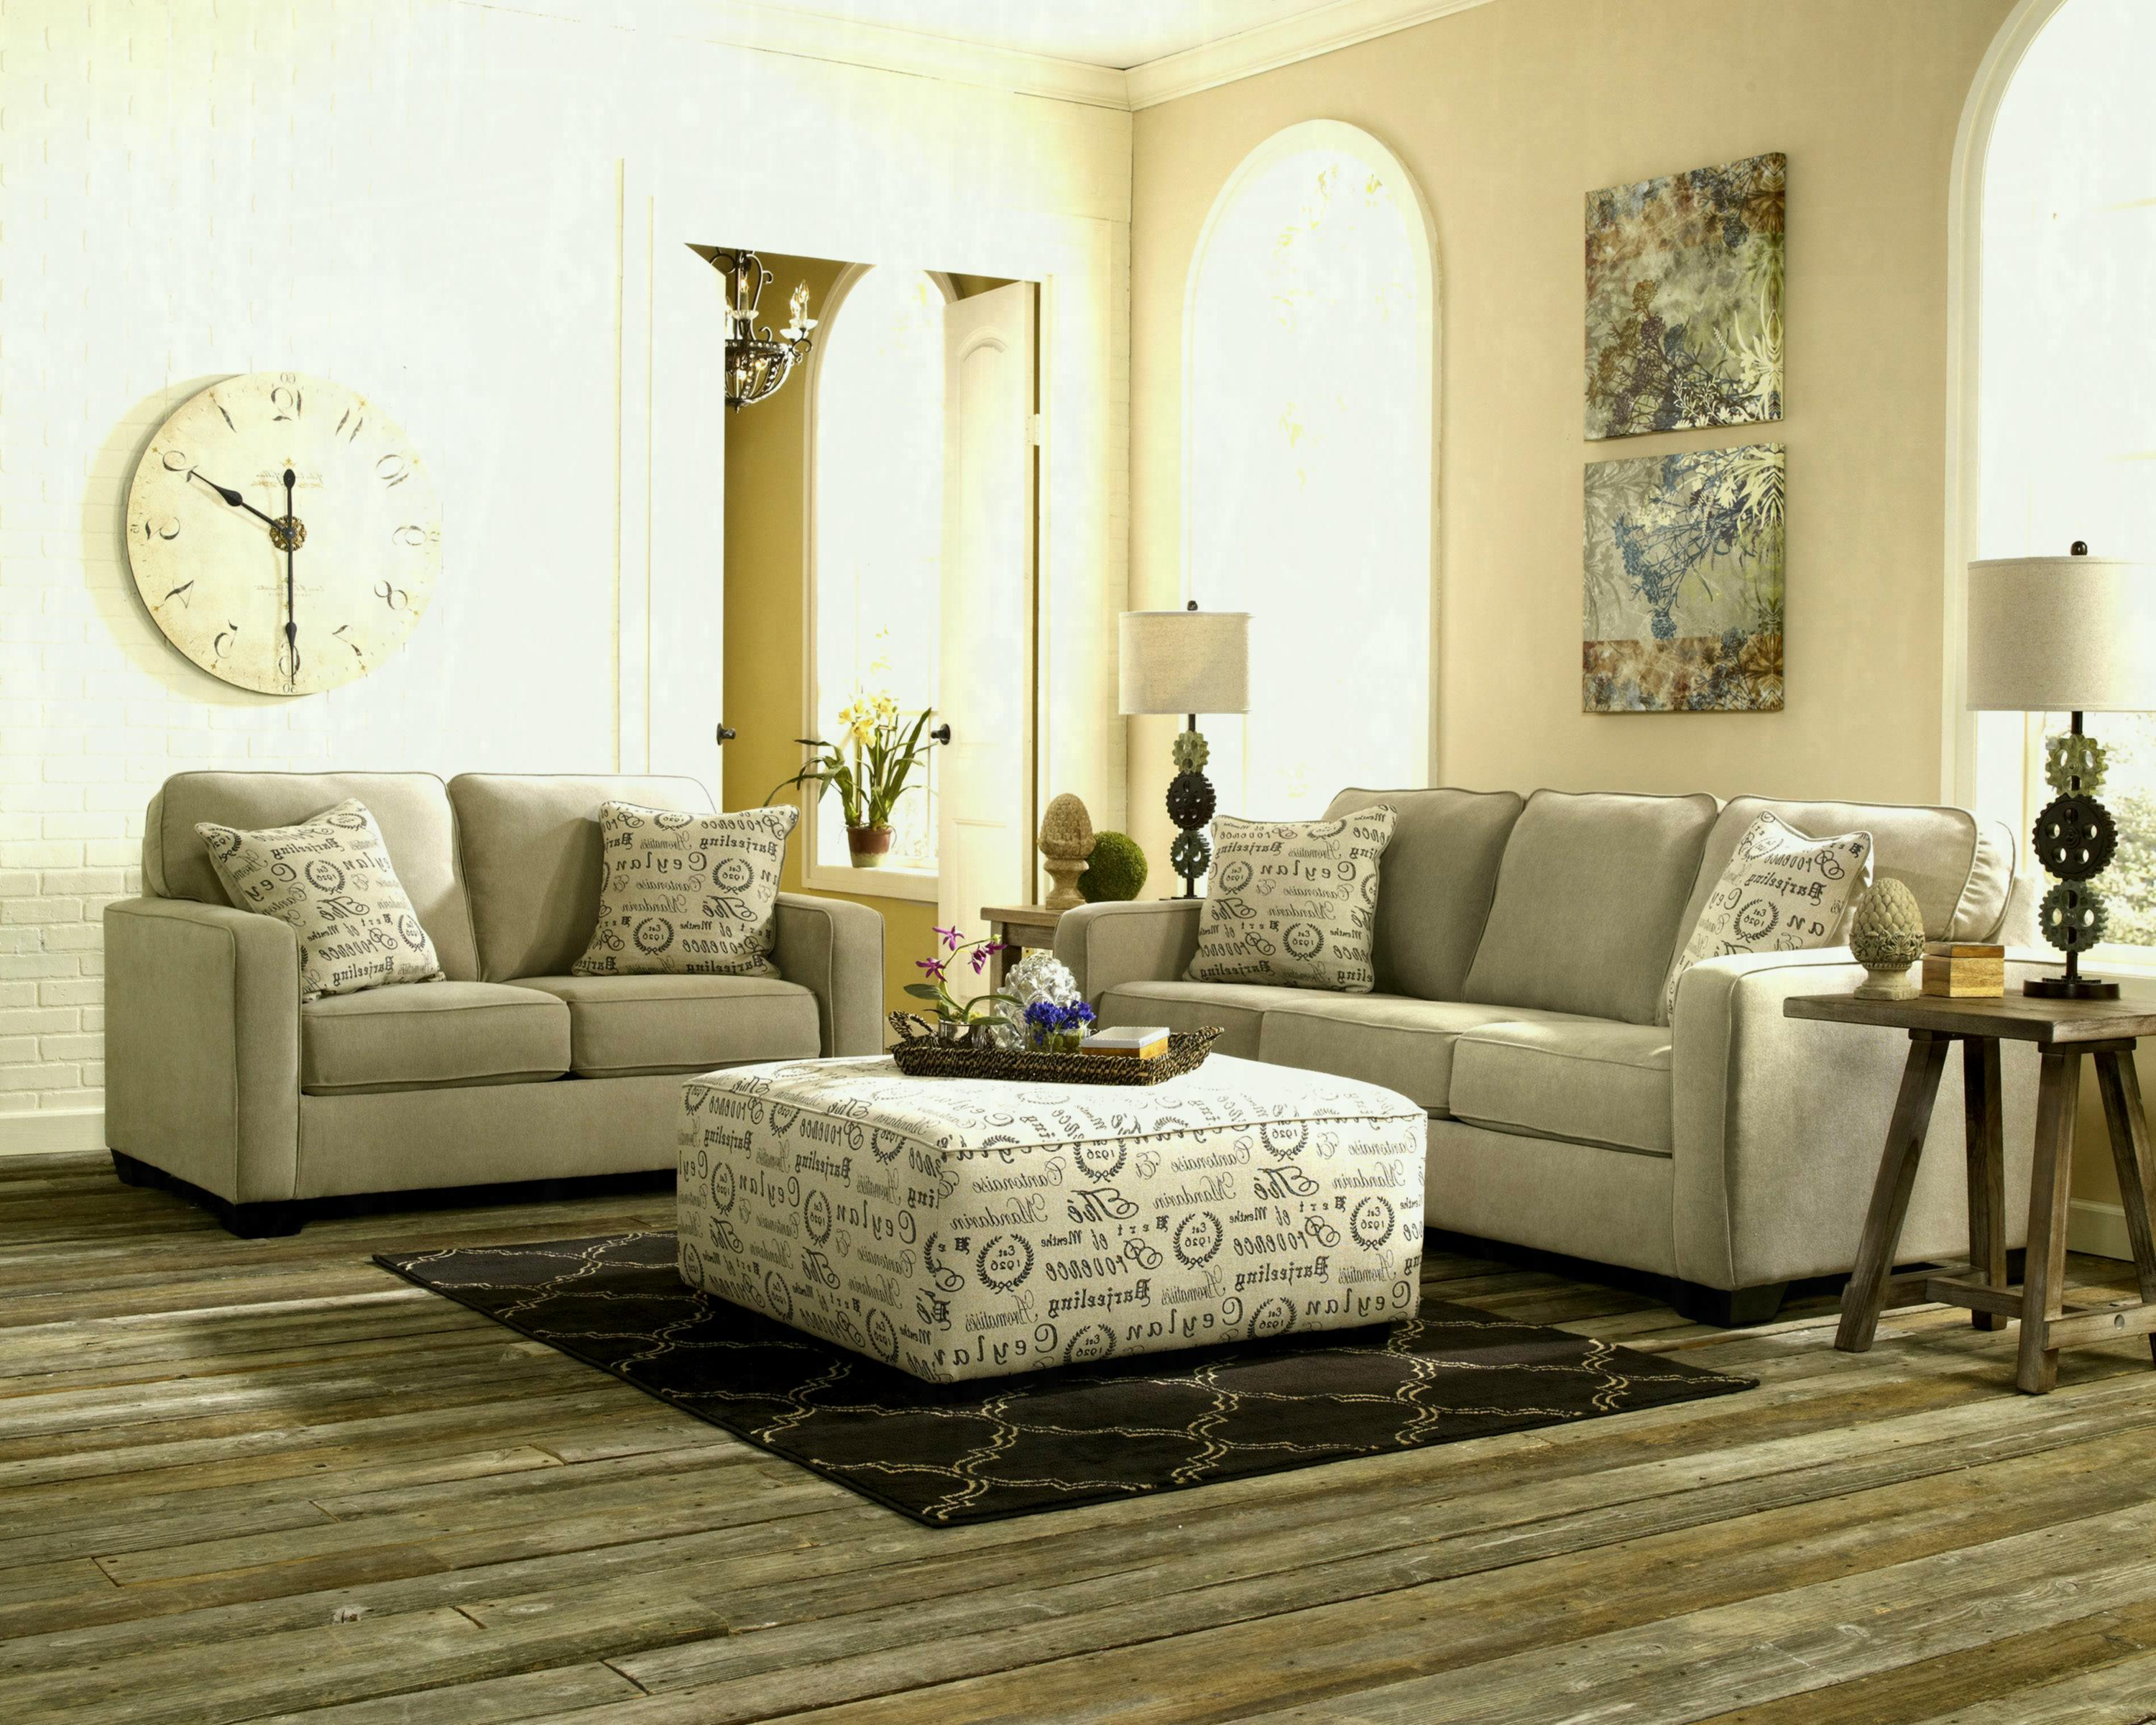 Added To Cart Aquarius Light Grey Piece Sectional W Raf Chaise In Most Recently Released Aquarius Light Grey 2 Piece Sectionals With Laf Chaise (View 1 of 20)